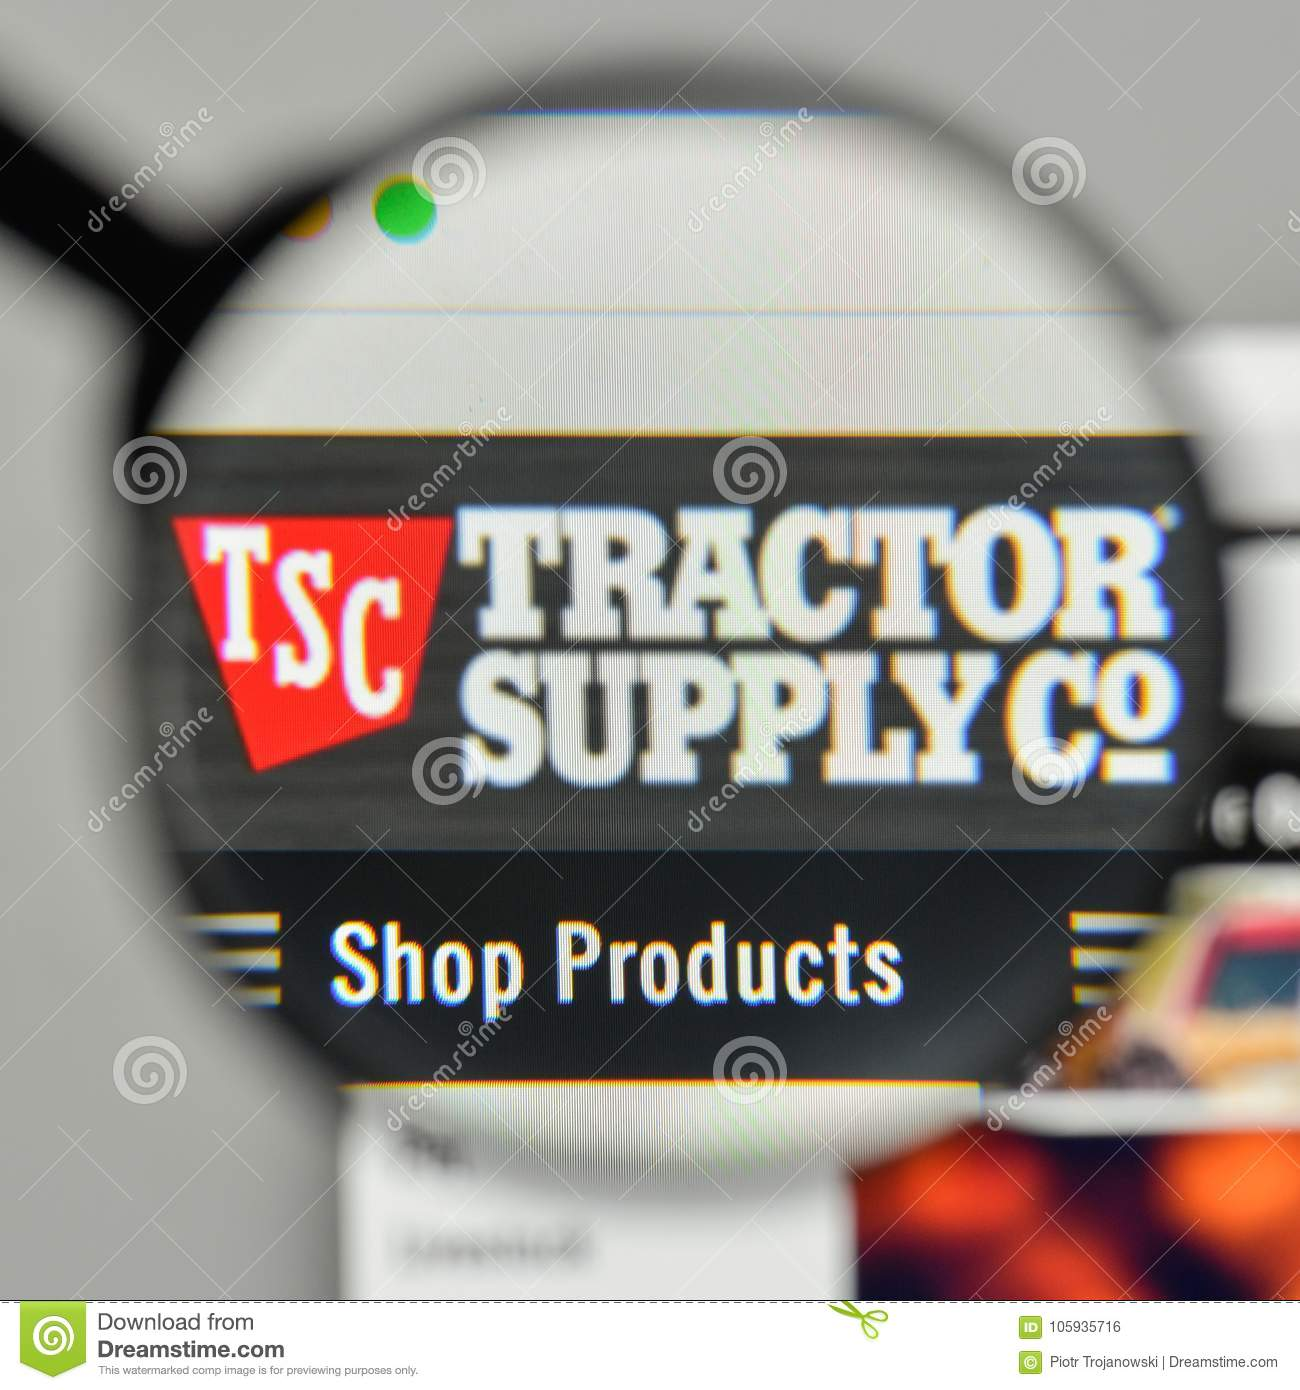 Milan italy november 1 2017 tractor supply logo on the webs milan italy november 1 2017 tractor supply logo on the webs emblem site editorial stock photo buycottarizona Gallery